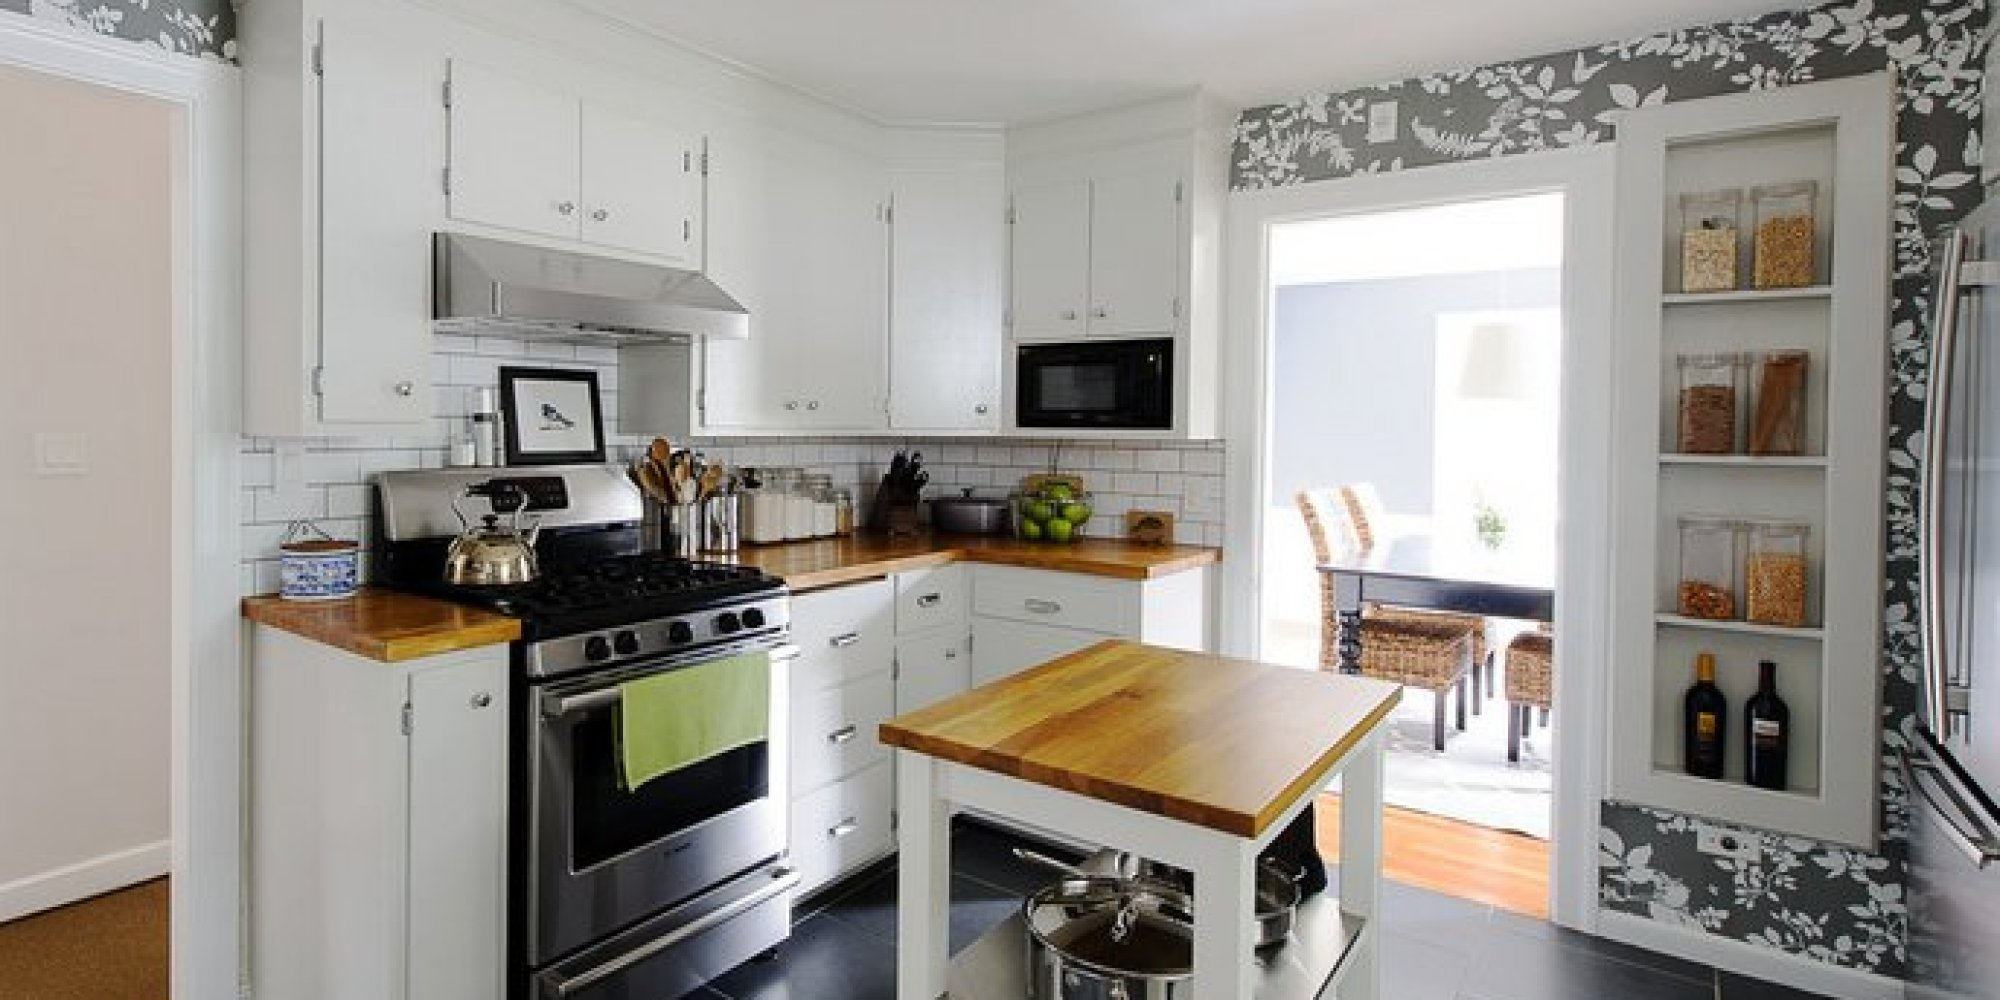 Interior Ways To Update Kitchen Cabinets 19 inexpensive ways to fix up your kitchen photos huffpost